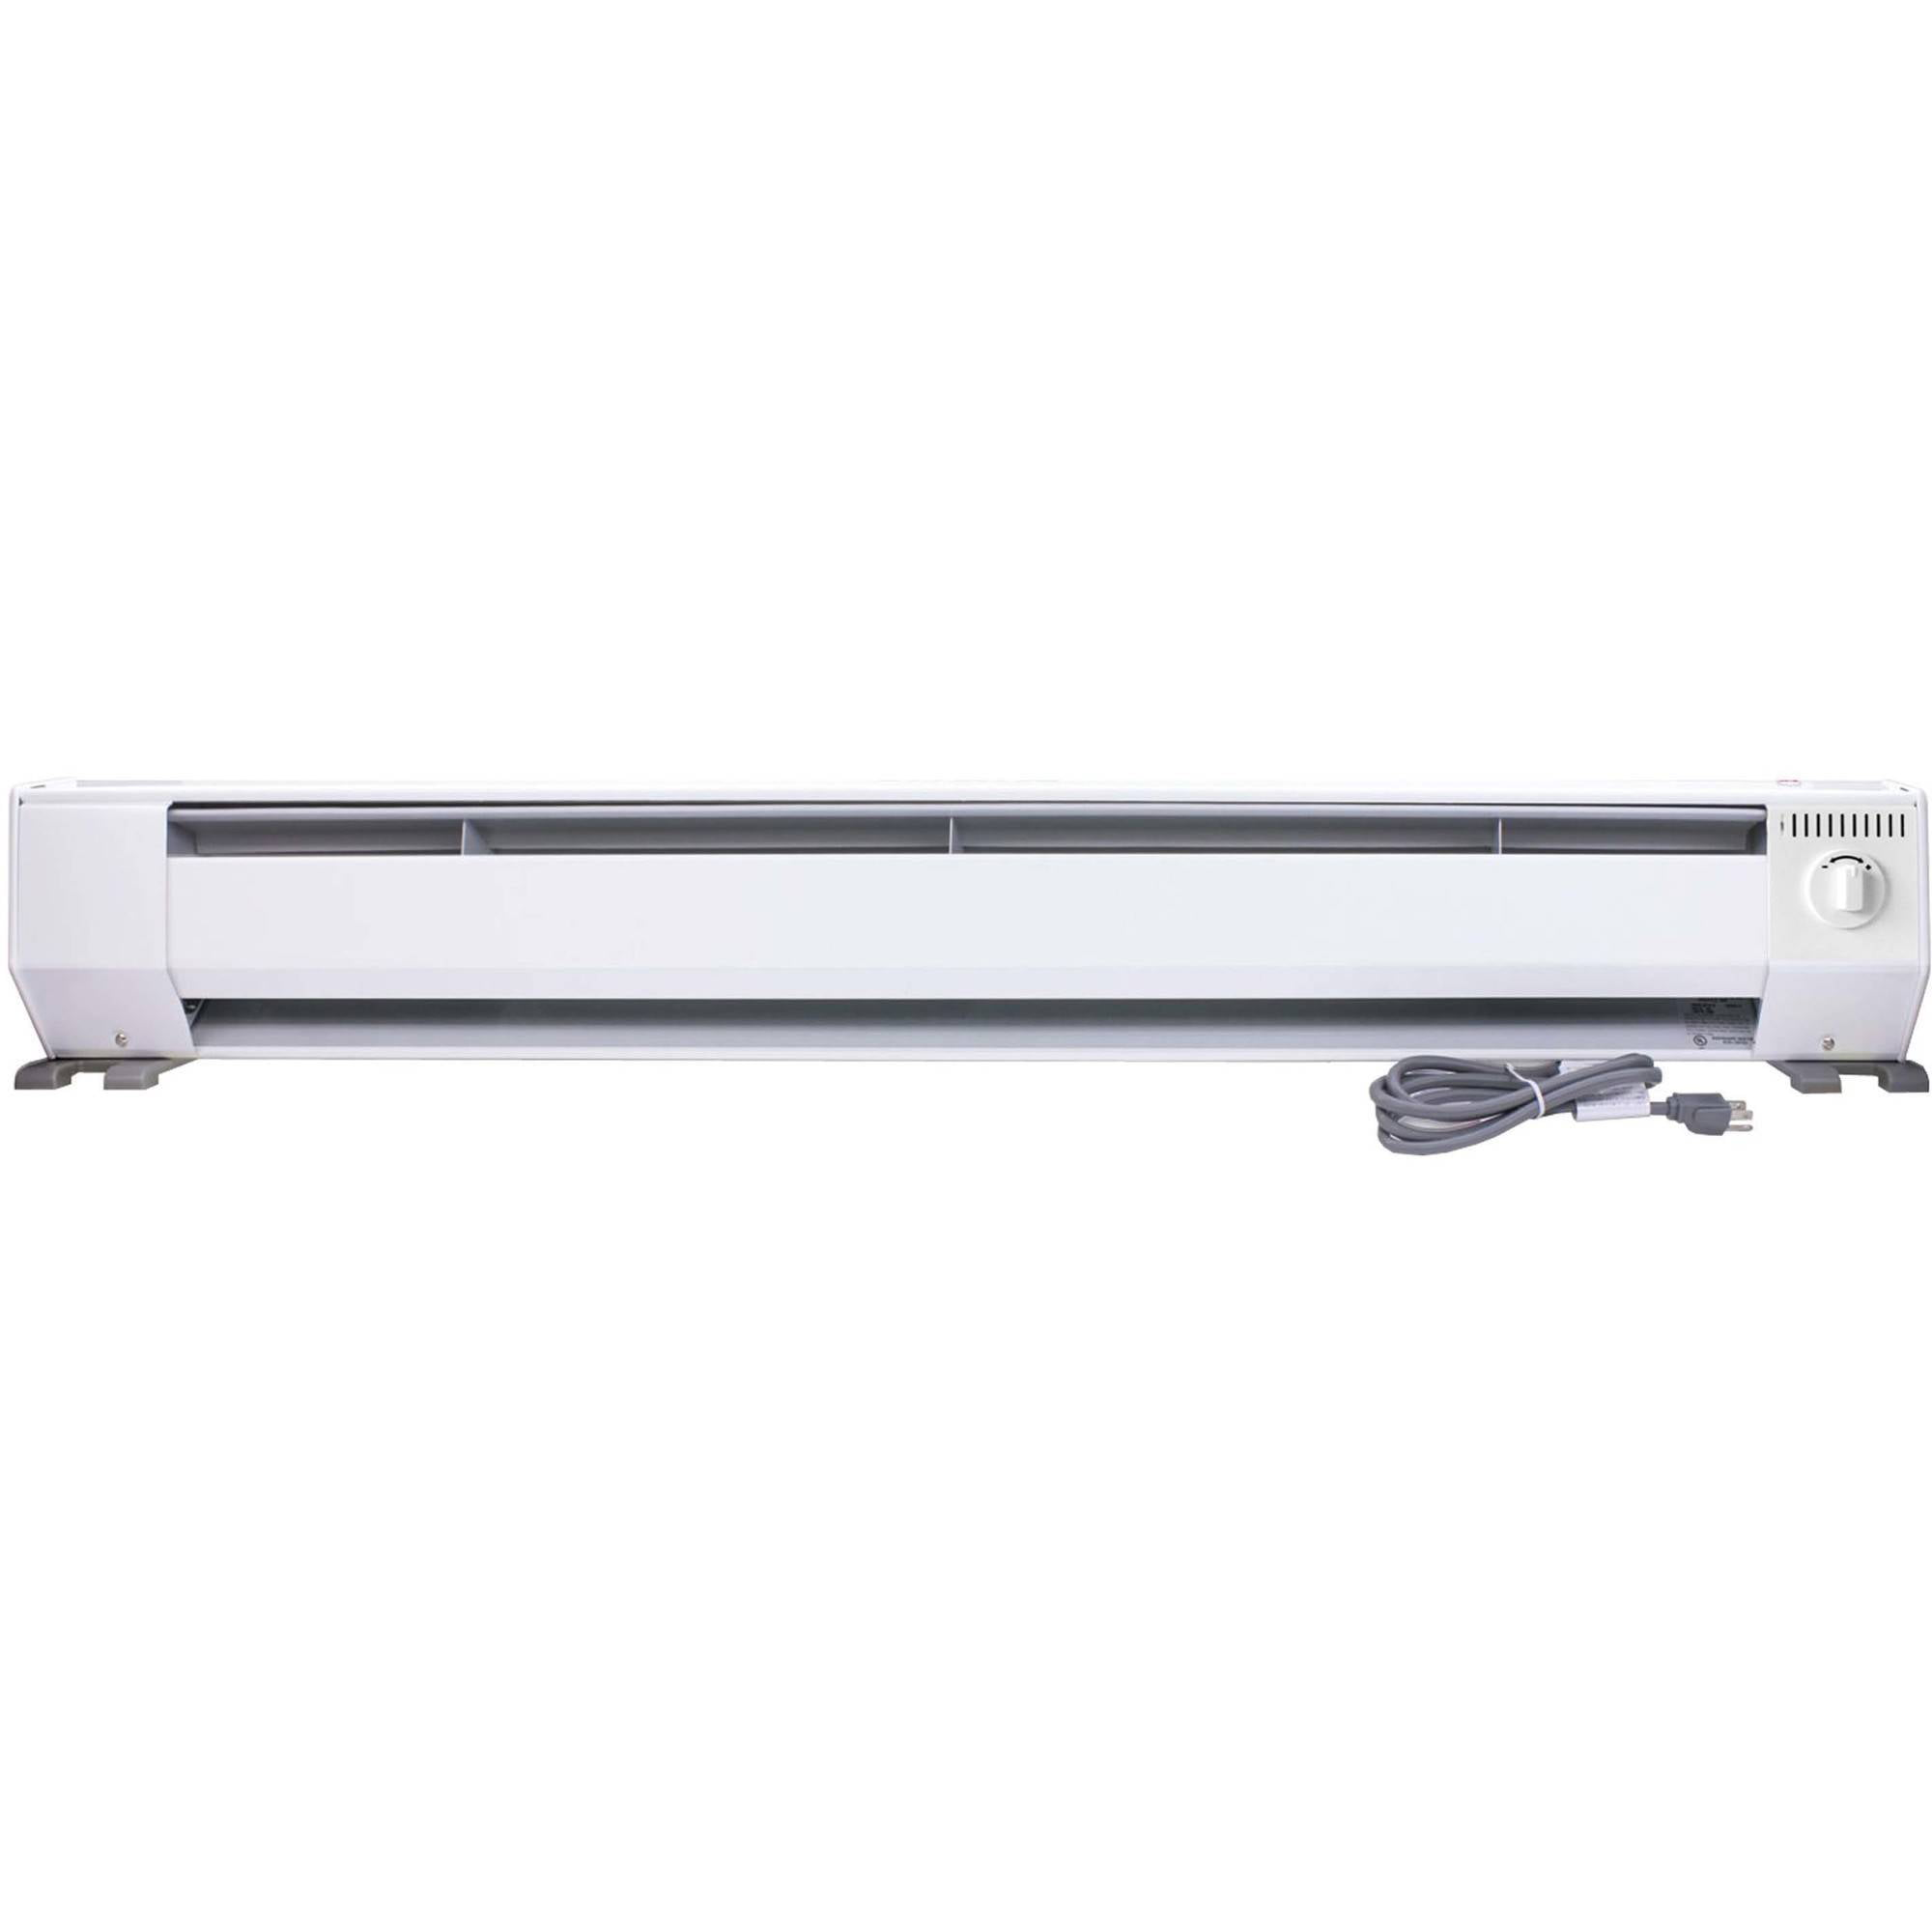 King 4' Portable Electric Baseboard Heater, White by King Electric